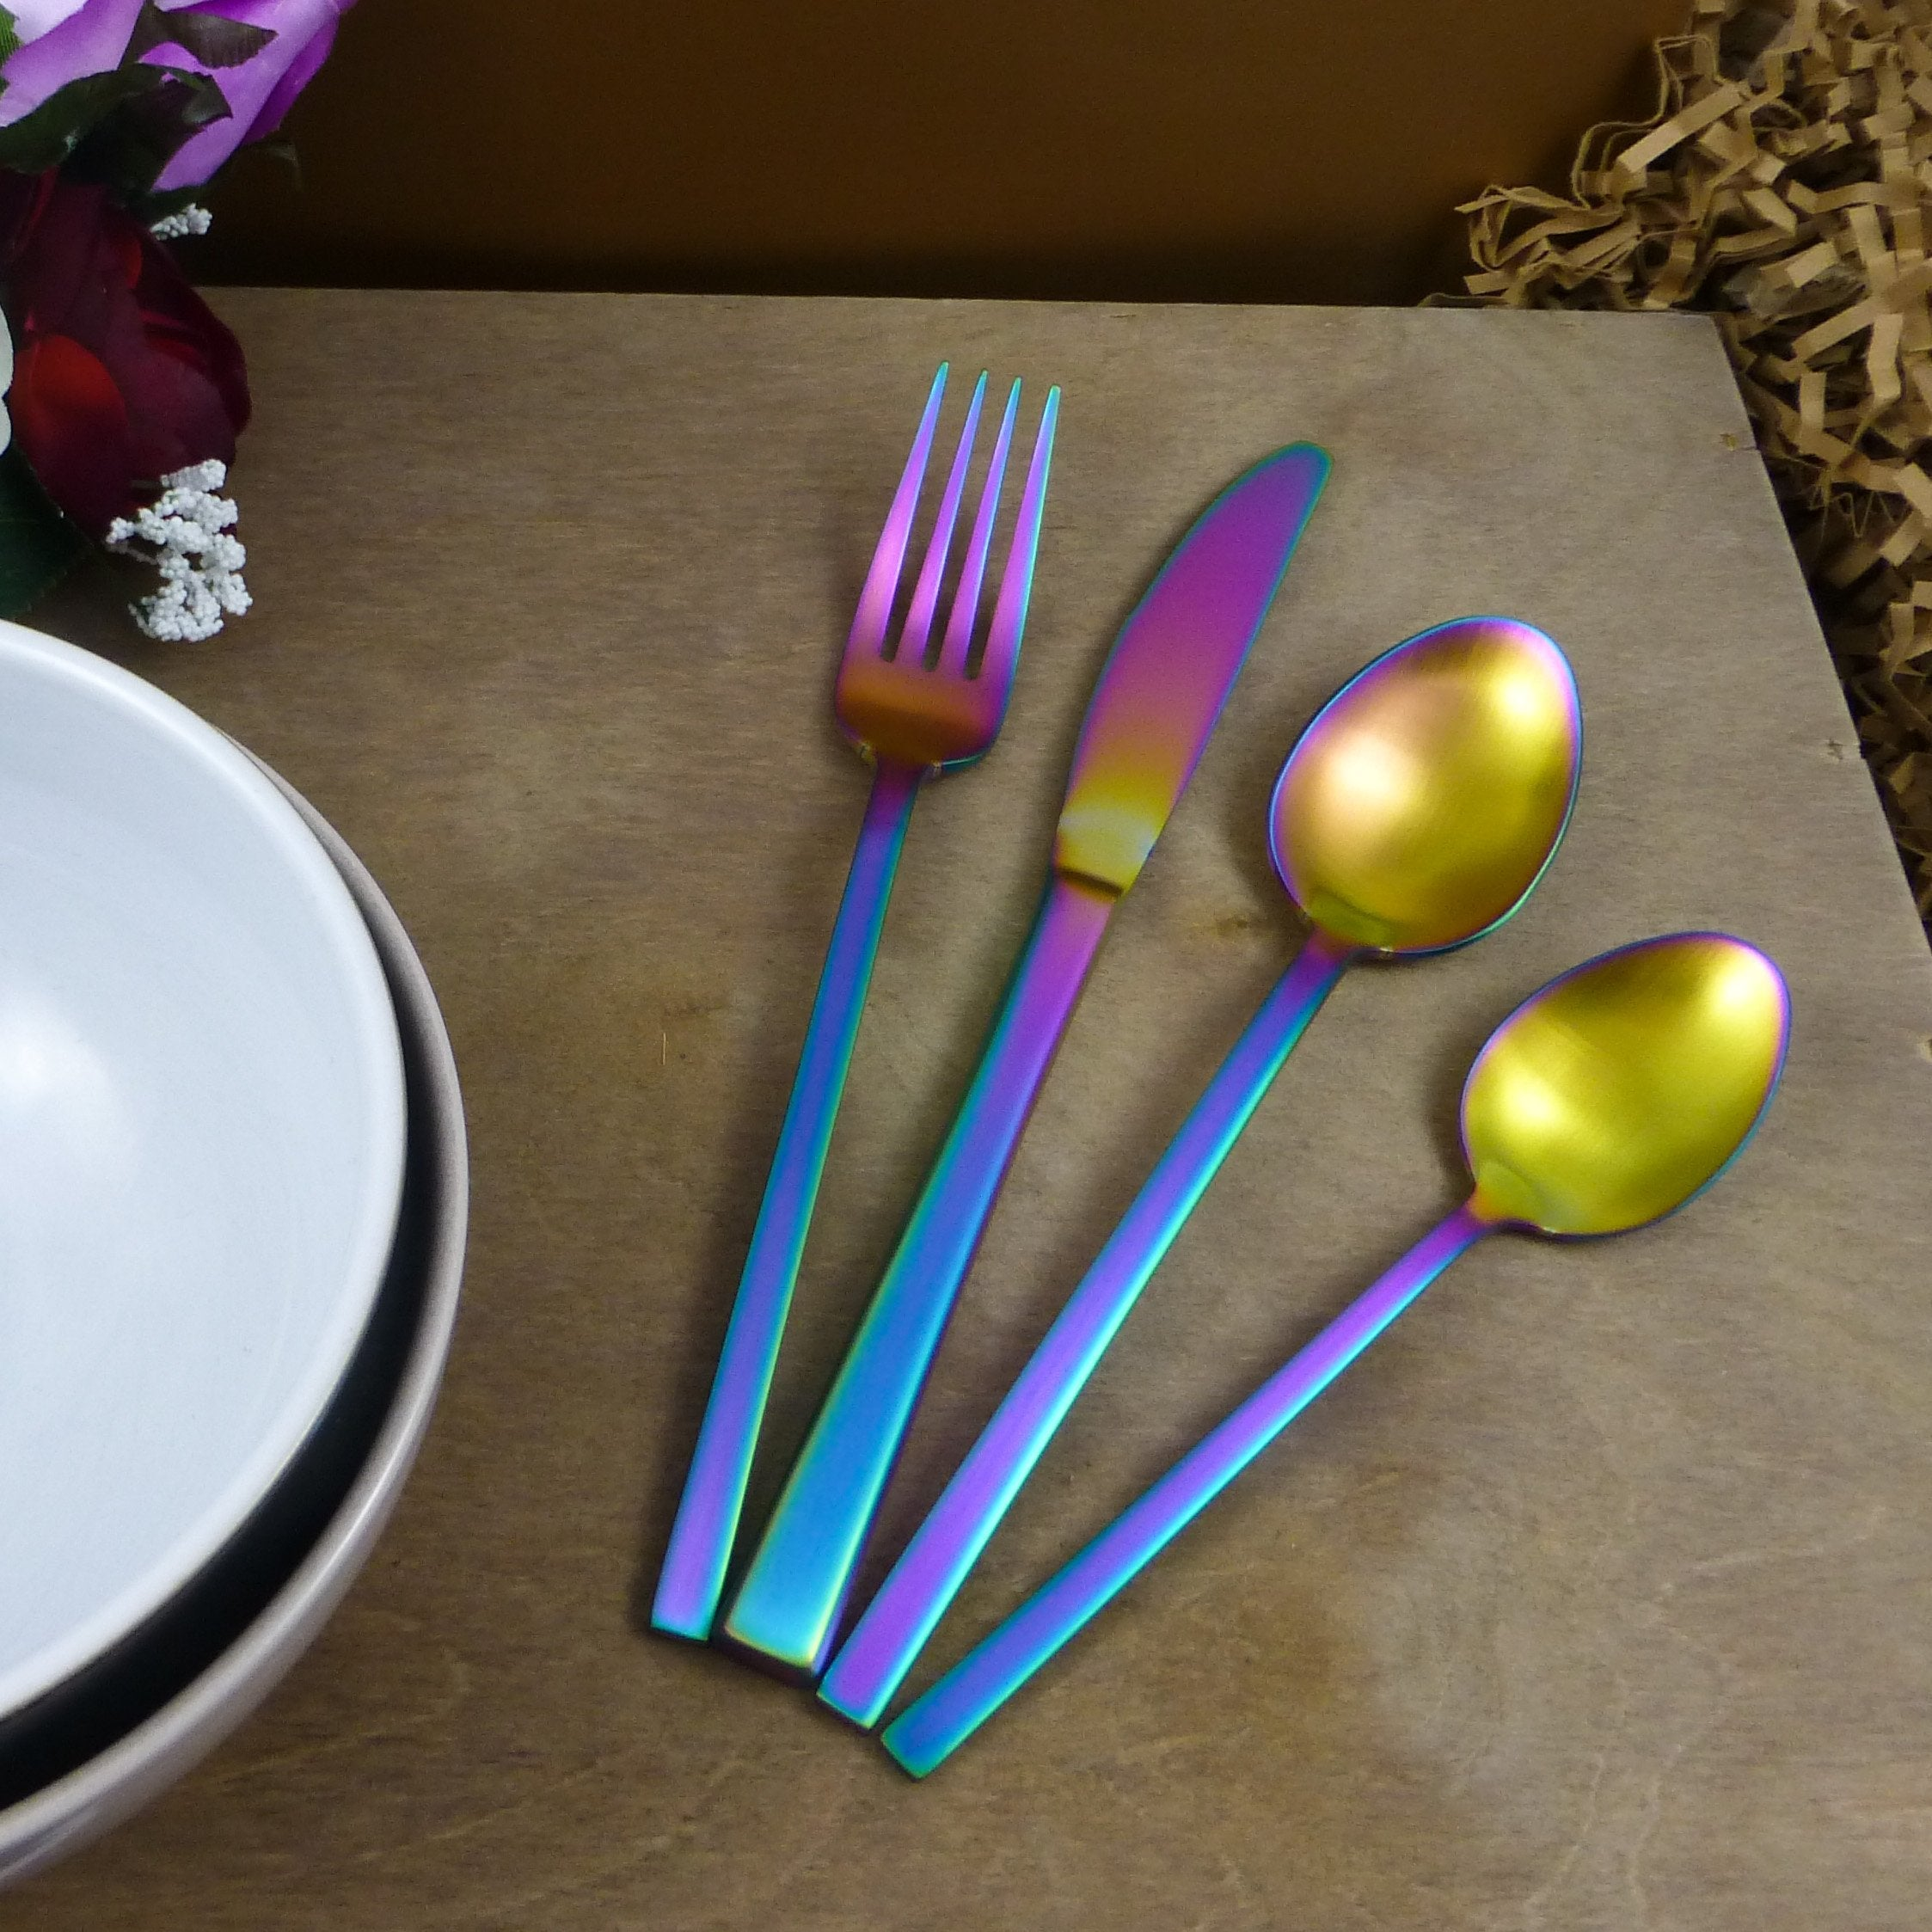 Iridescent Cutlery Hire